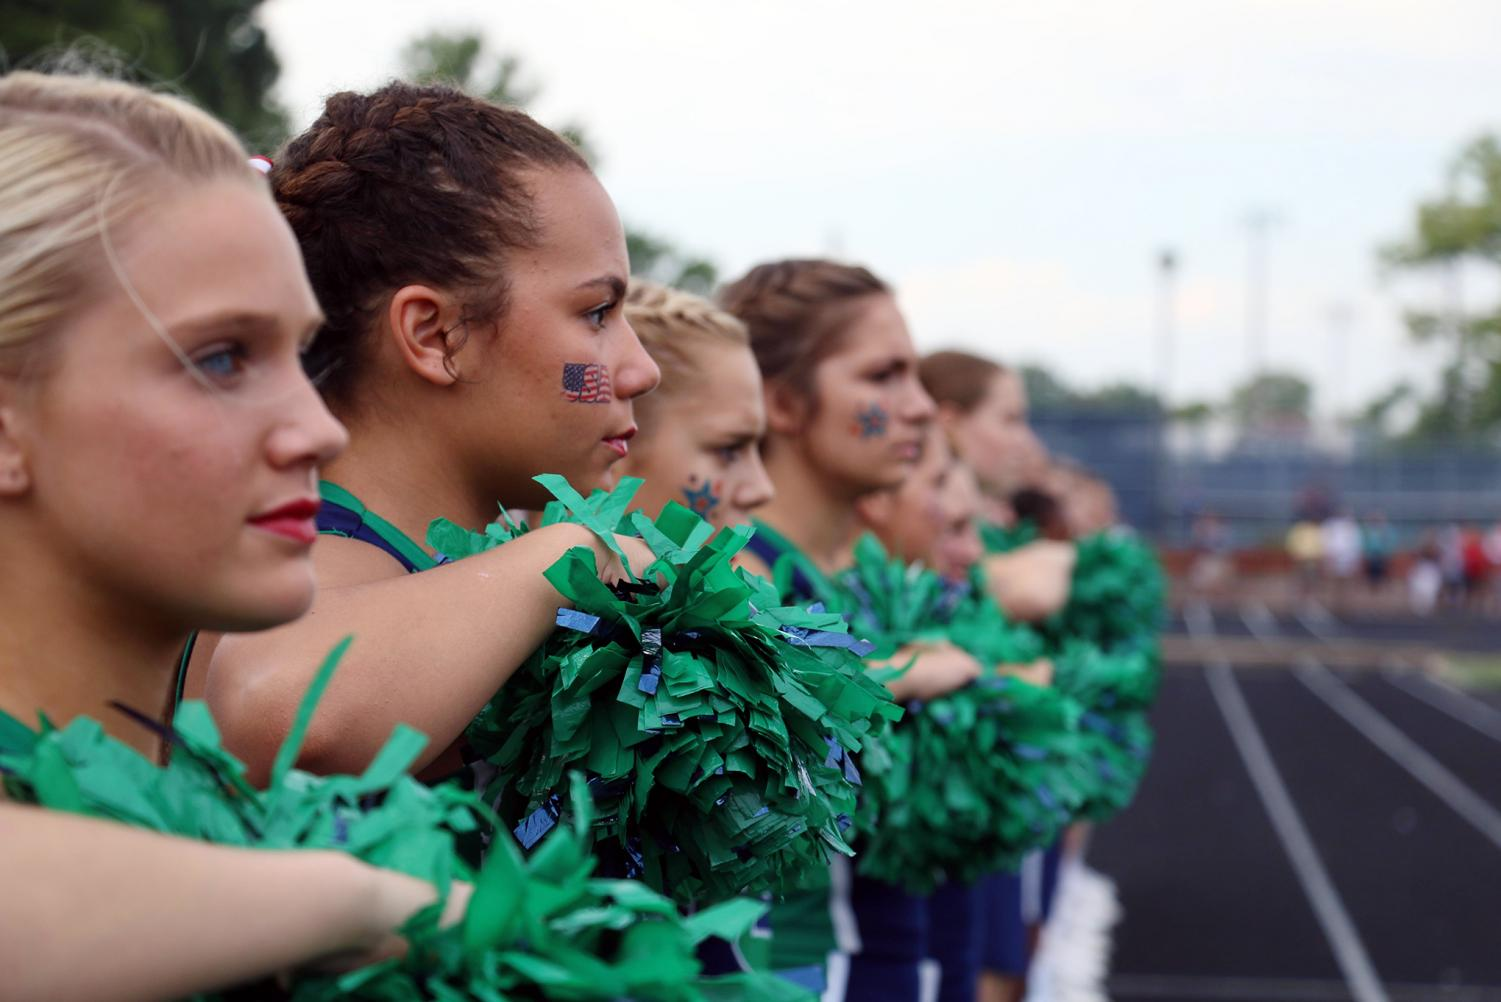 Cheerleading tryouts for the next school year will take place at noon on April 28 in the Mimms Gymnasium.